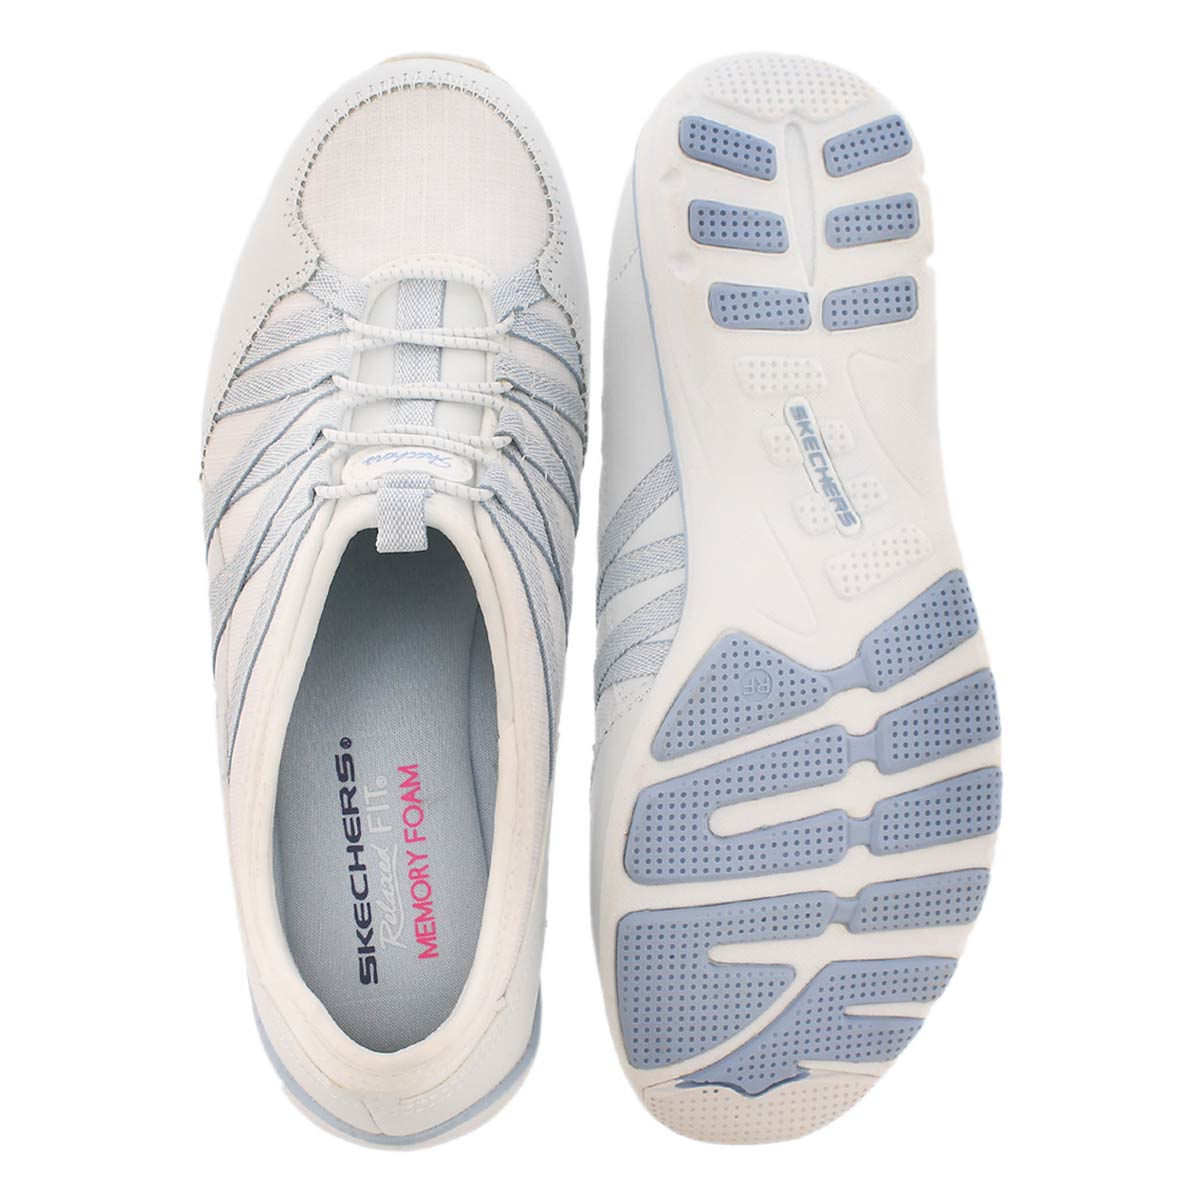 Lds Holding Aces wht/gry slipon sneaker